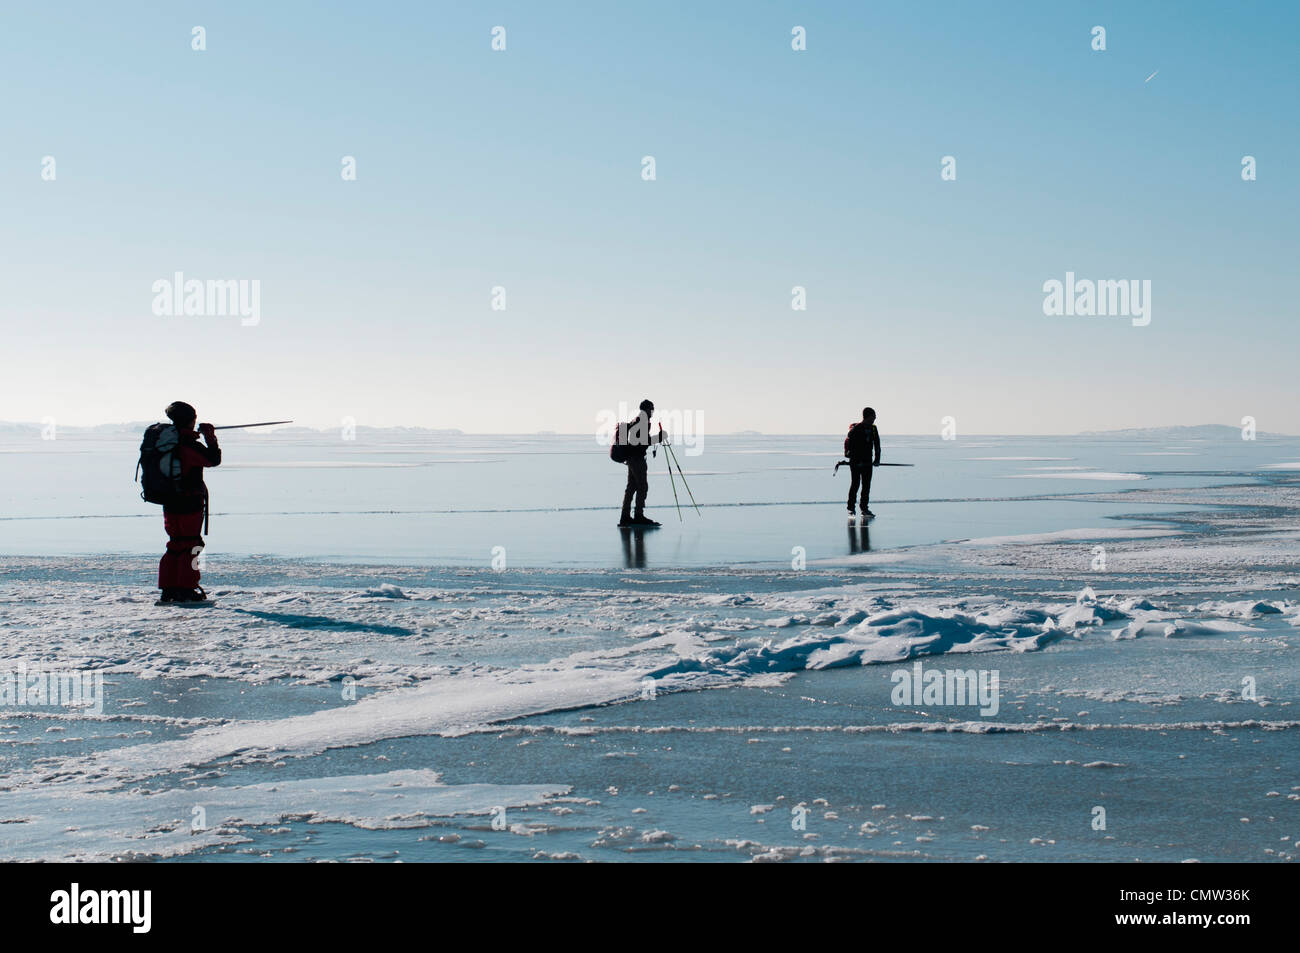 Three people on the ice against sky Stock Photo